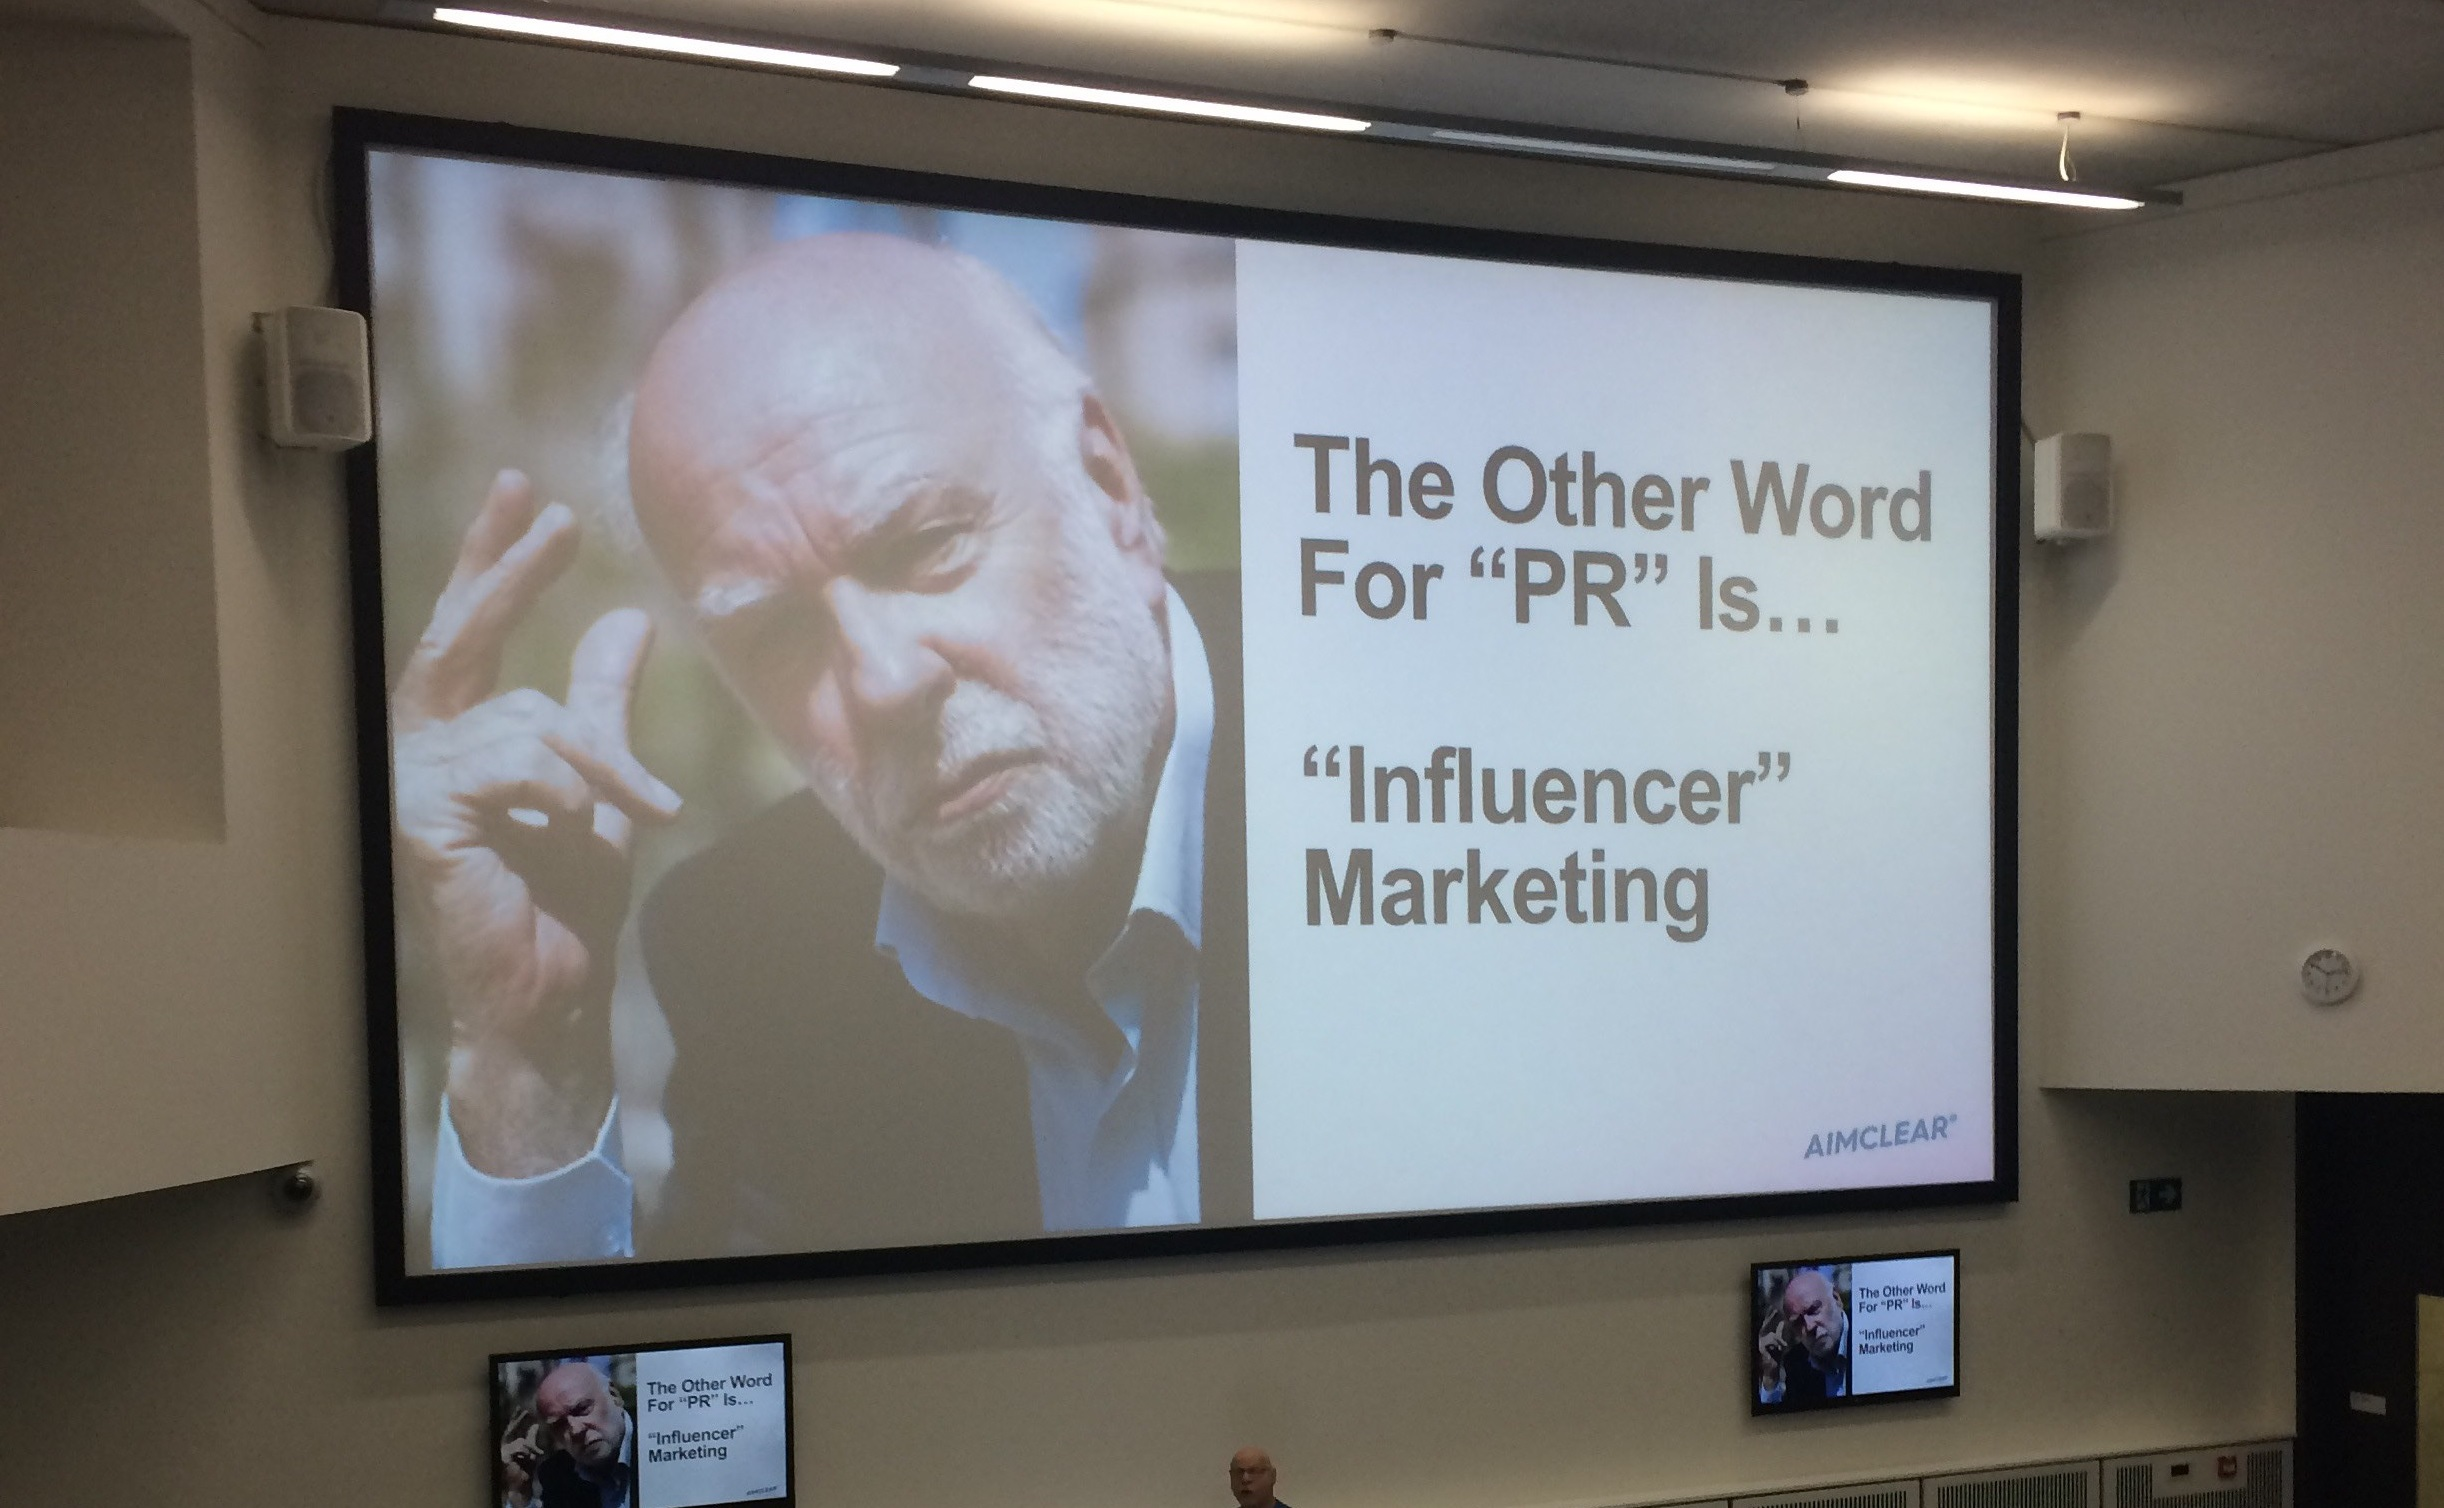 influencer_marketing.jpg